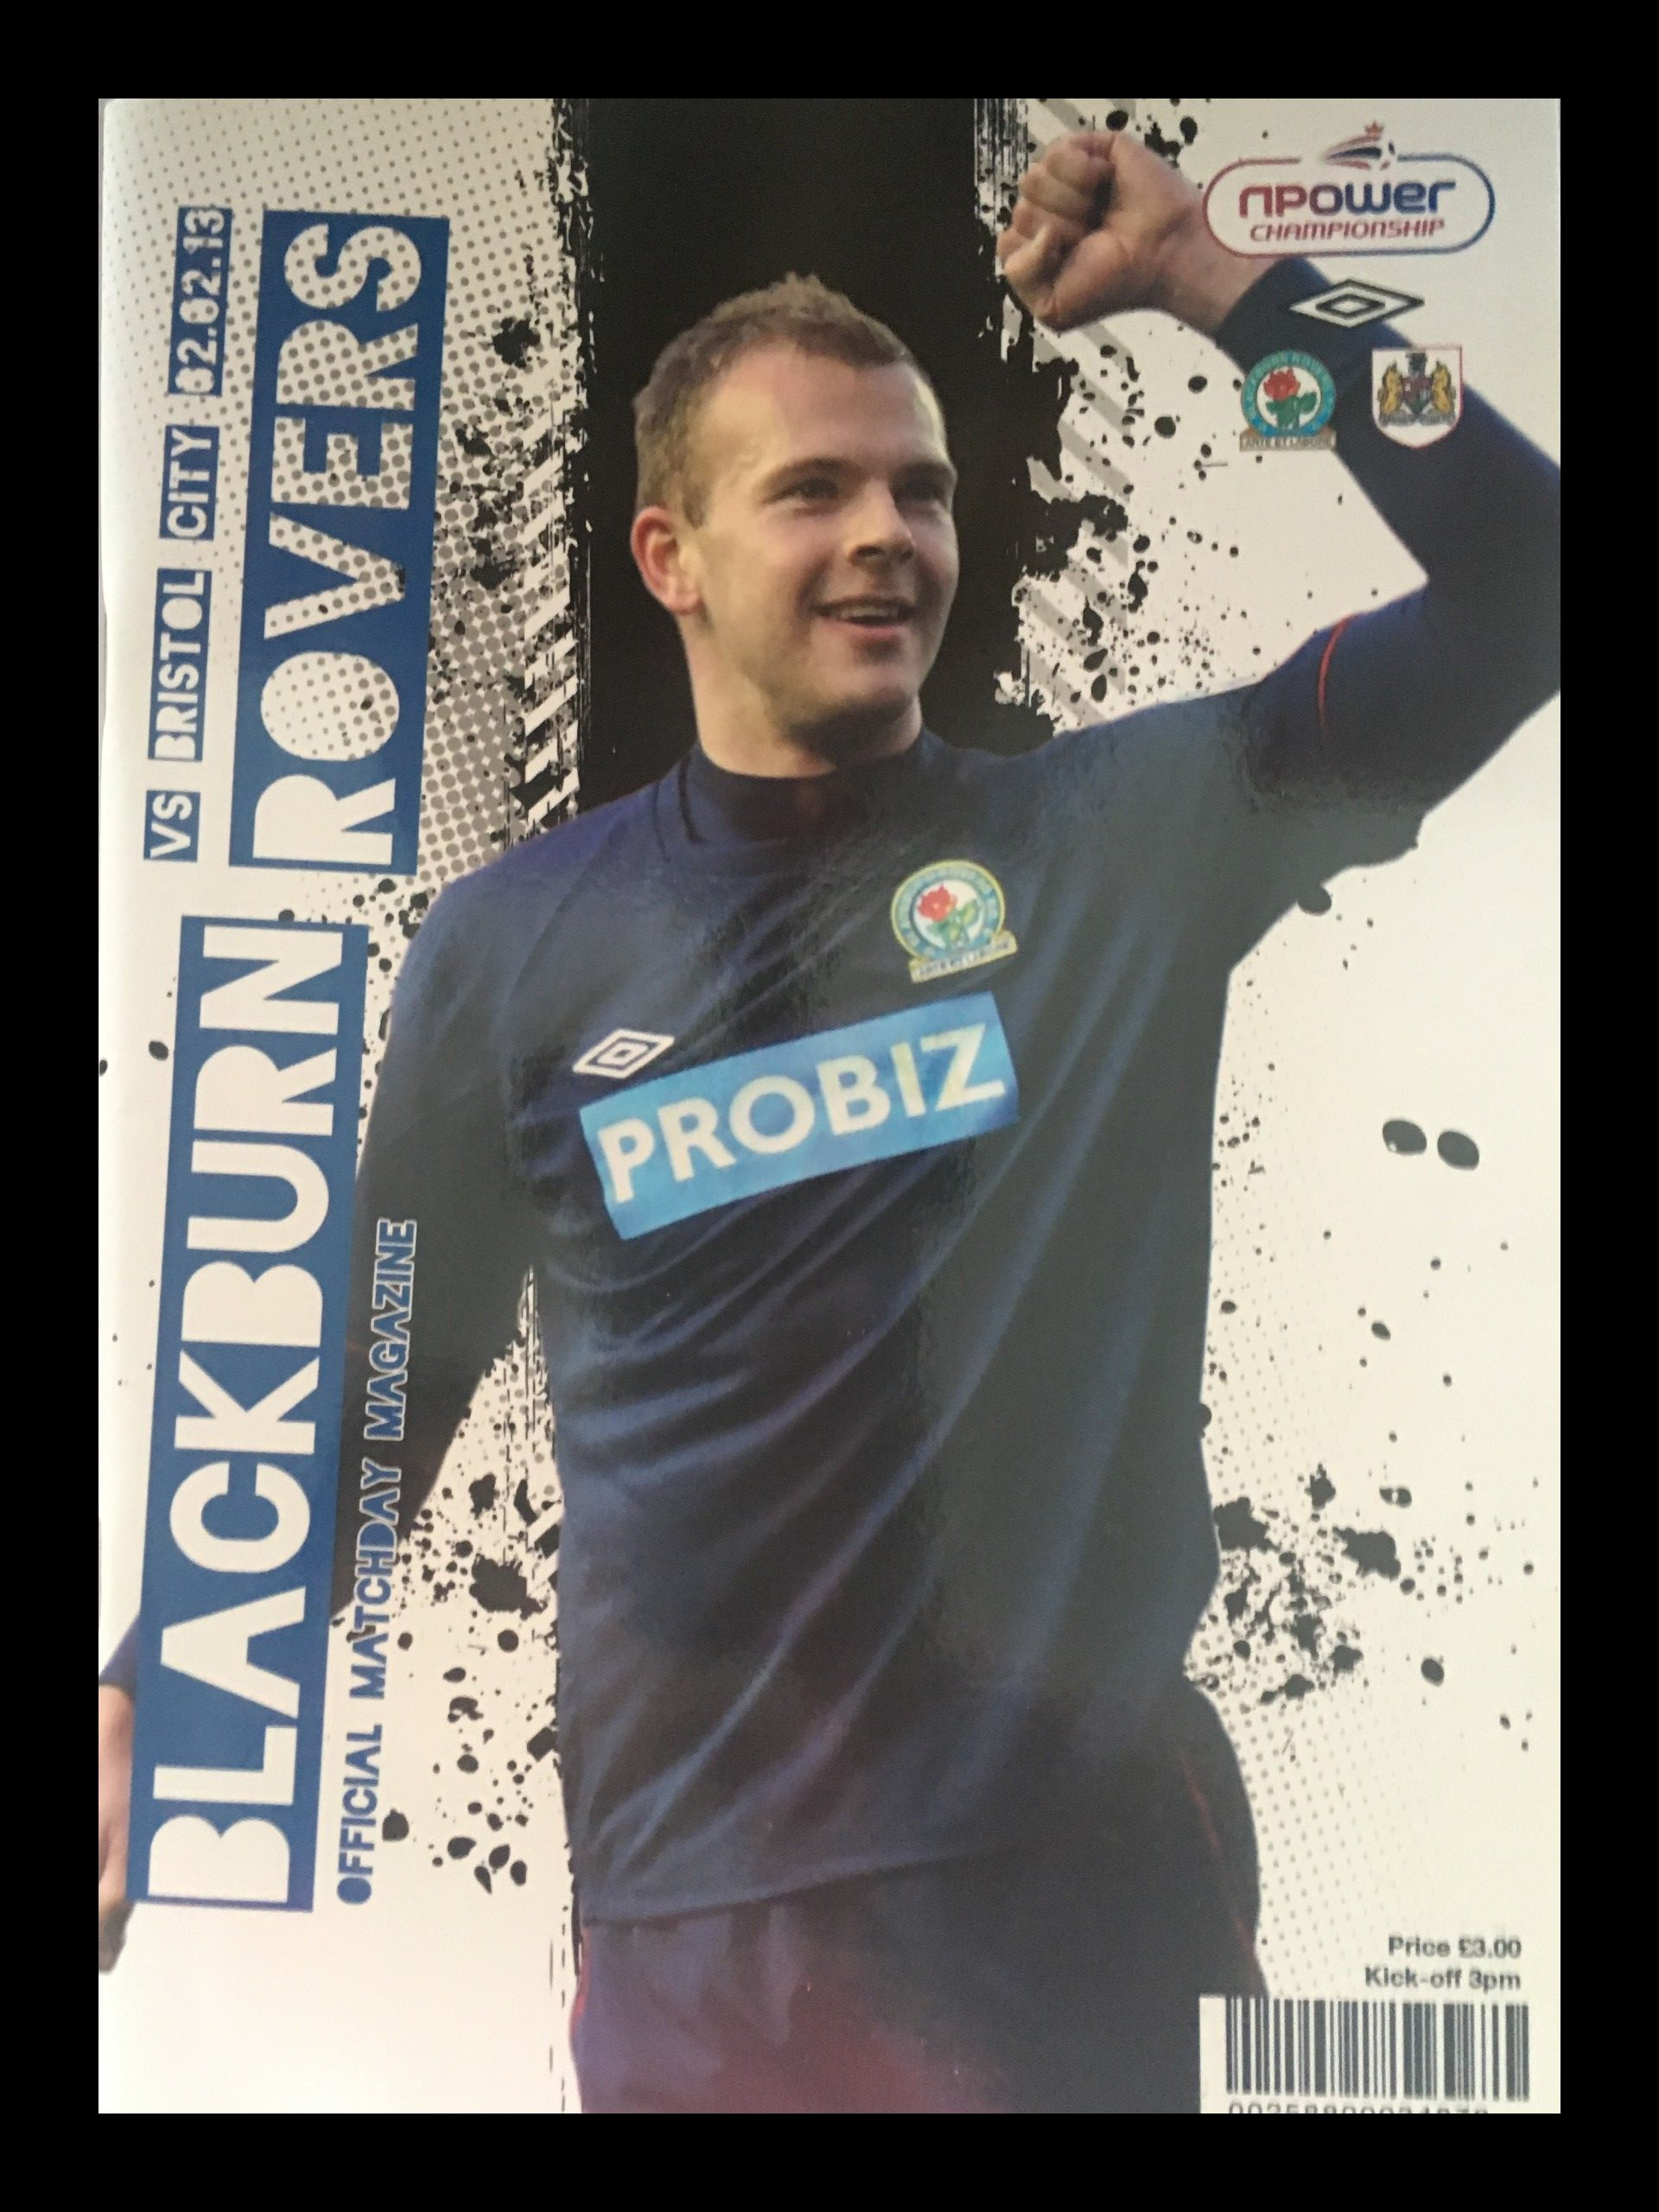 Blackburn Rovers v Bristol City 02-02-2013 Programme